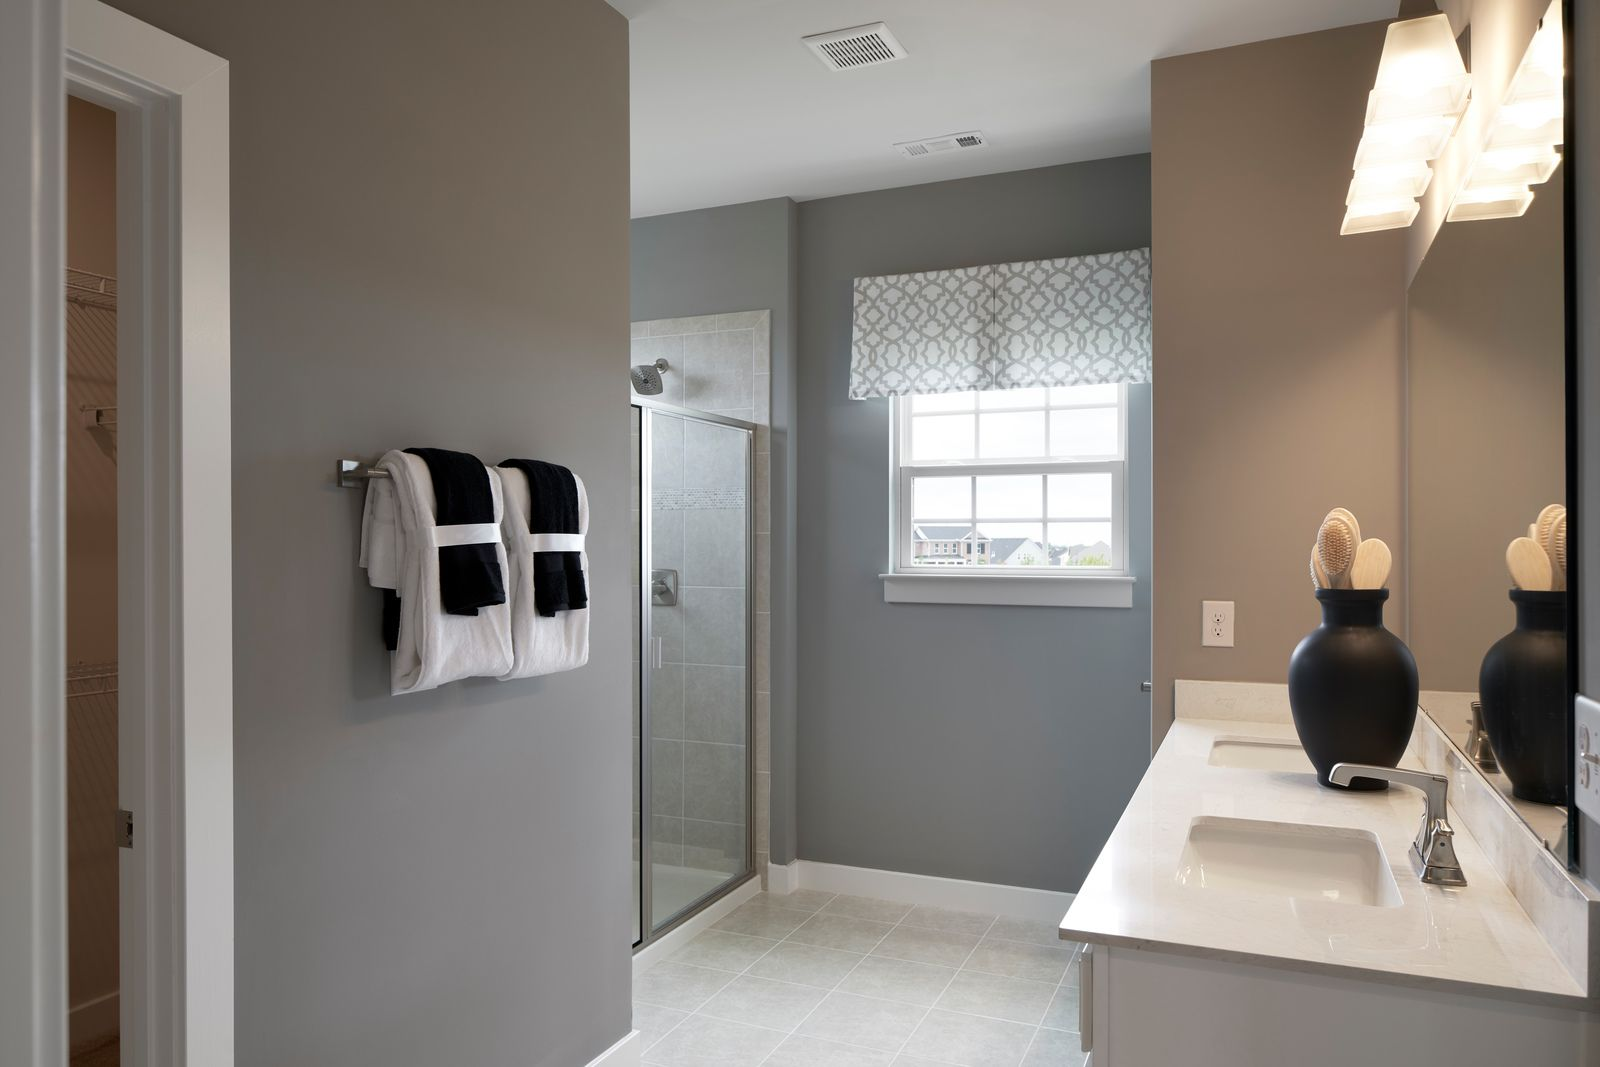 Bathroom featured in the Mitchell By Ryan Homes in Baltimore, MD